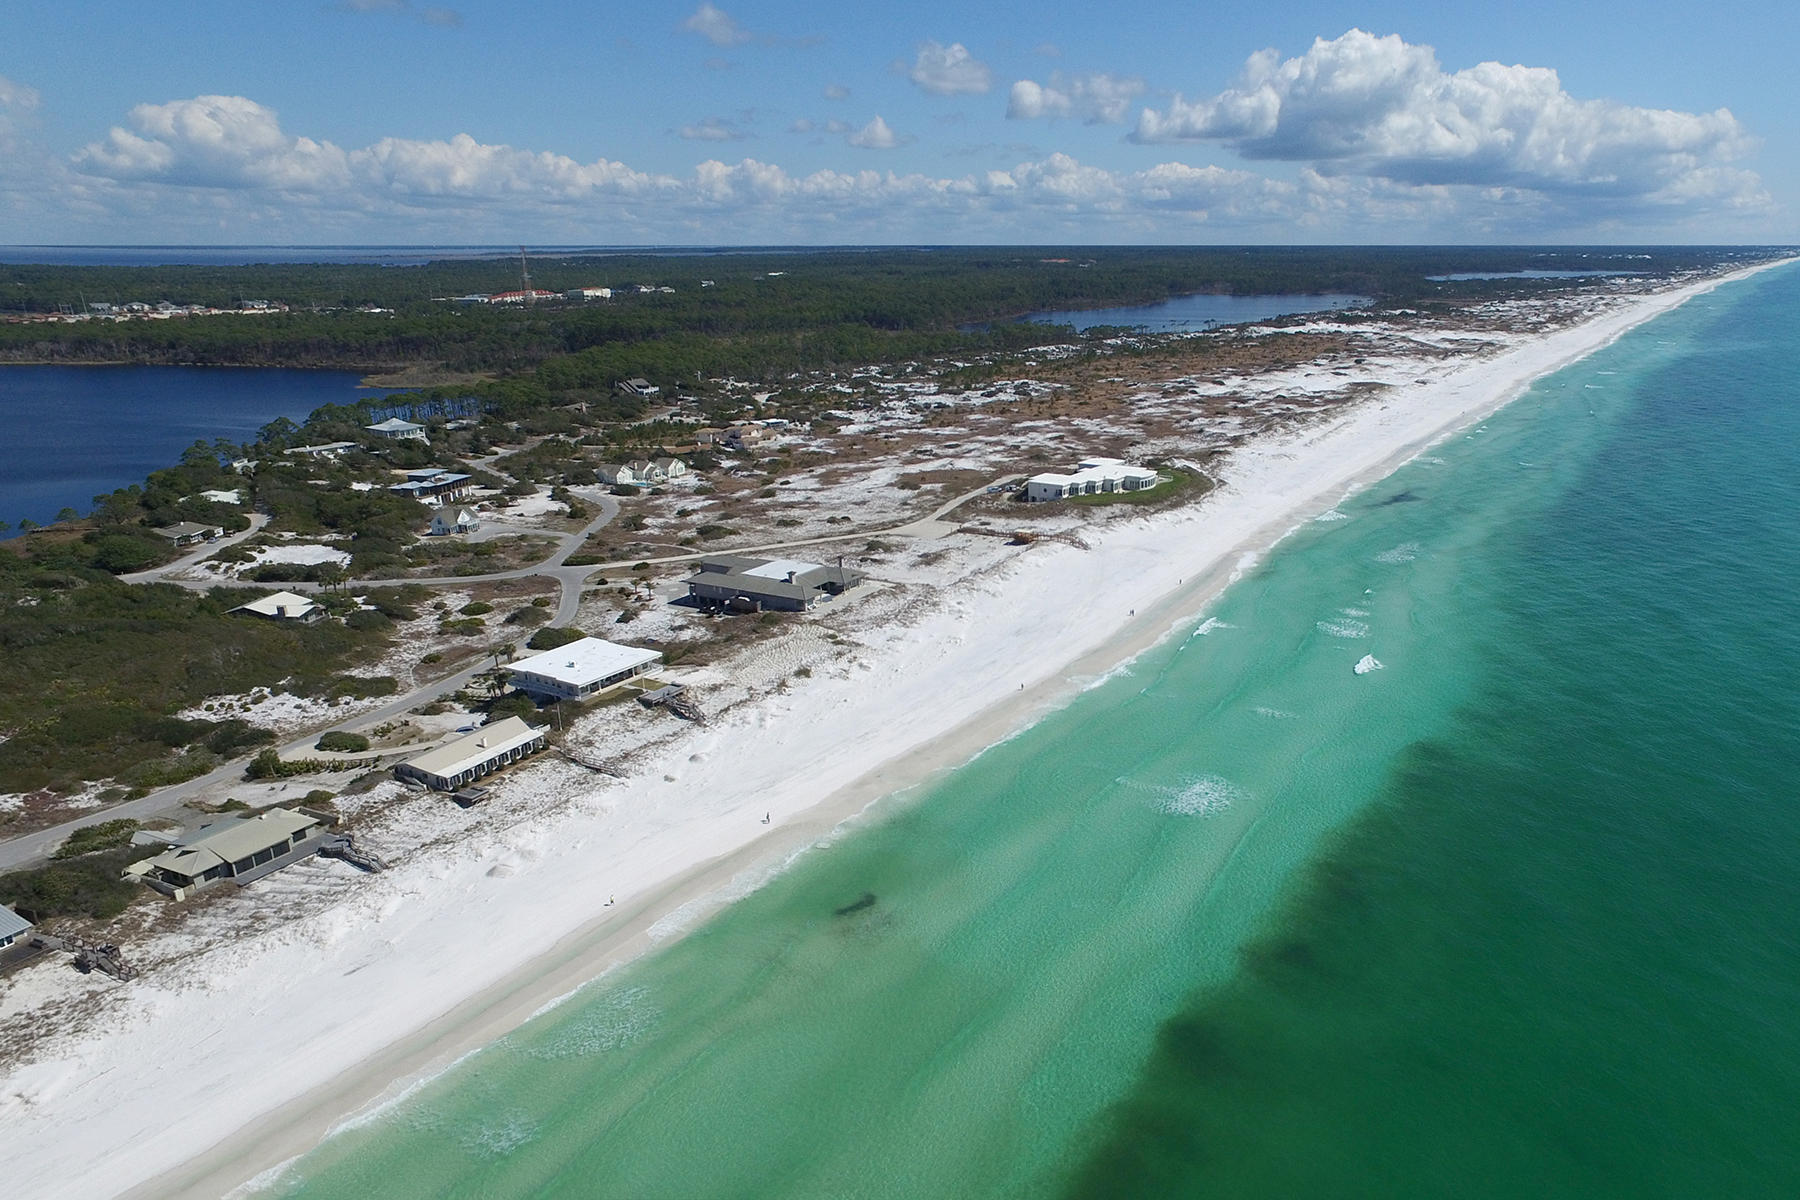 Land for Sale at GULF FRONT LOT IN PRIVATE COMMUNITY Lot 43 Village Beach Rd Santa Rosa Beach, Florida, 32459 United States